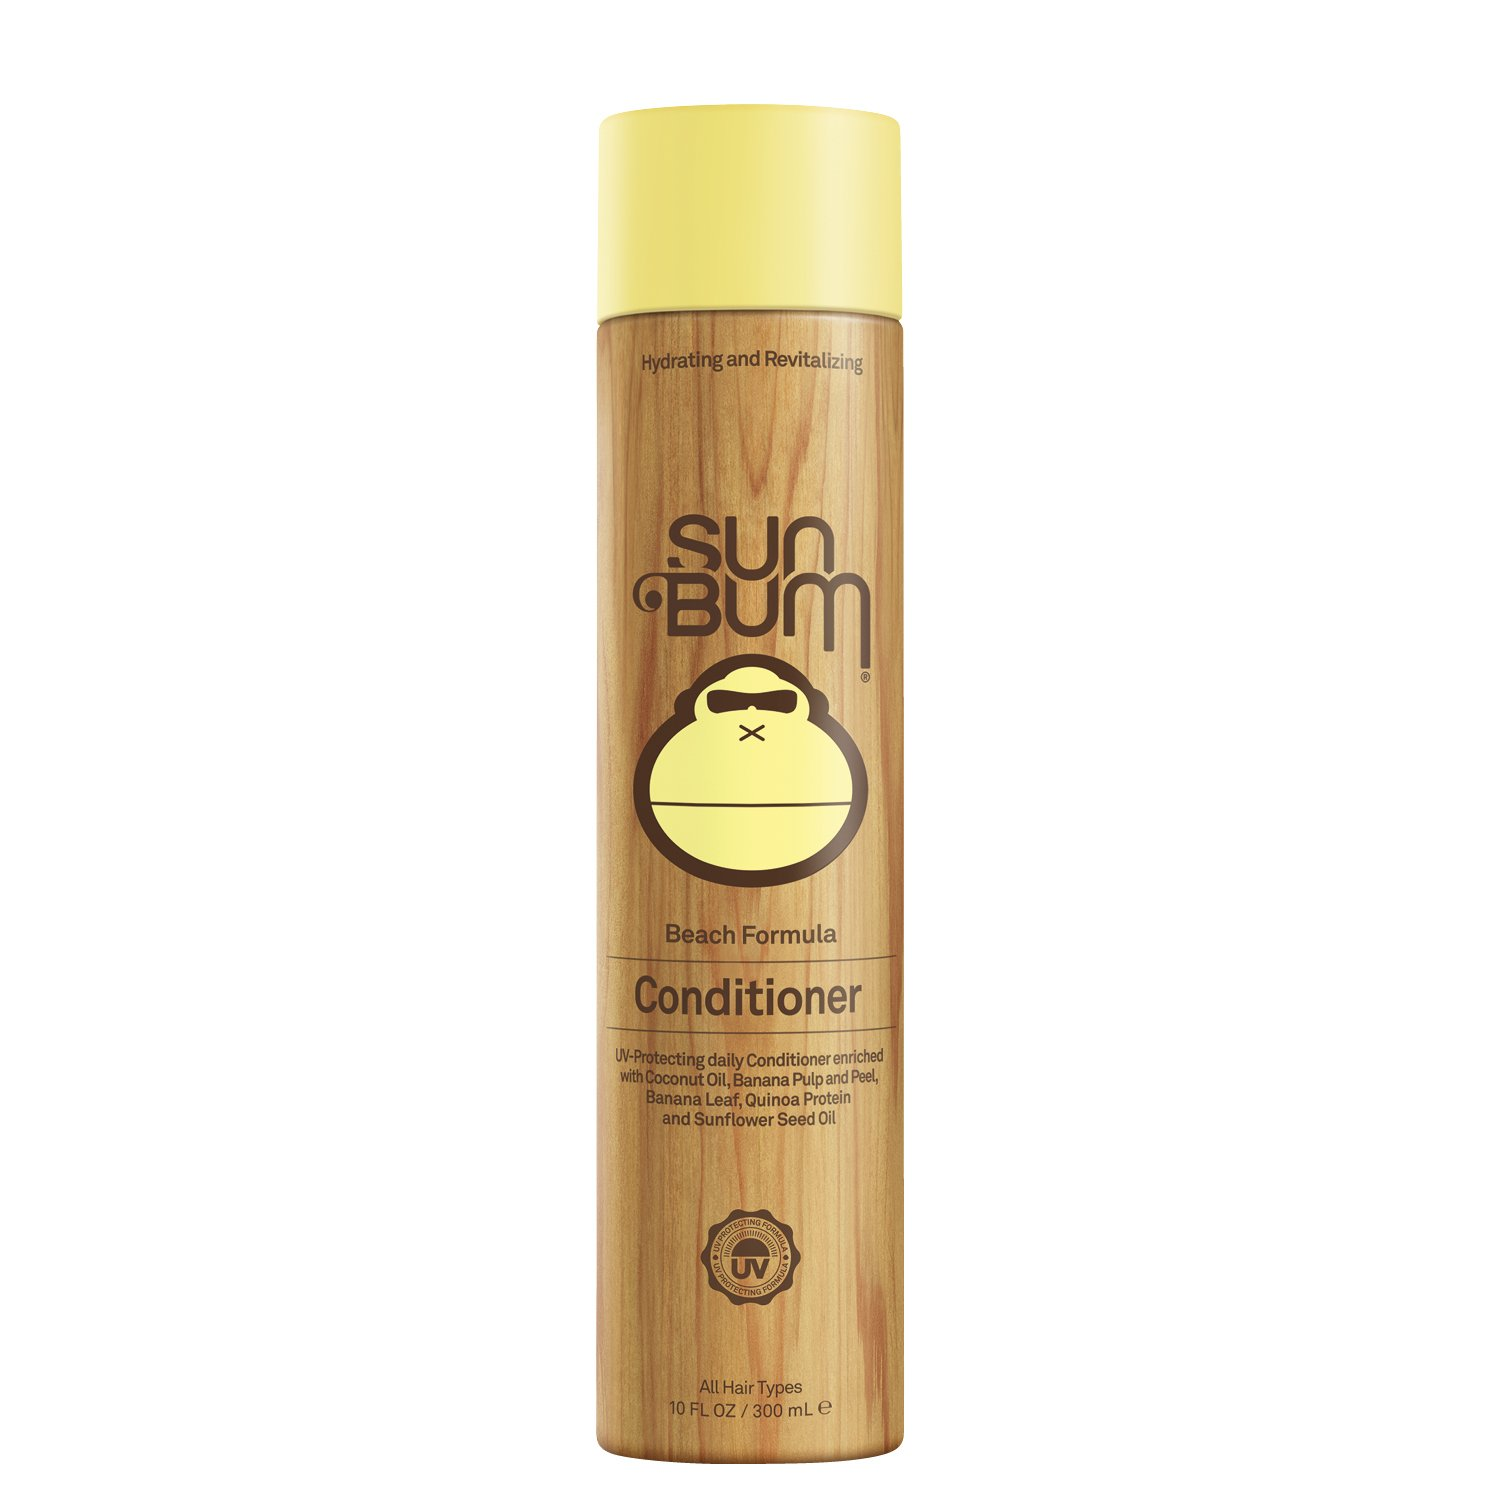 Sun Bum Beach Formula Daily Conditioner, 10oz Bottle, Revitalizing Conditioner, UV Protection for Hair, Smoothing and Shine Enhancing